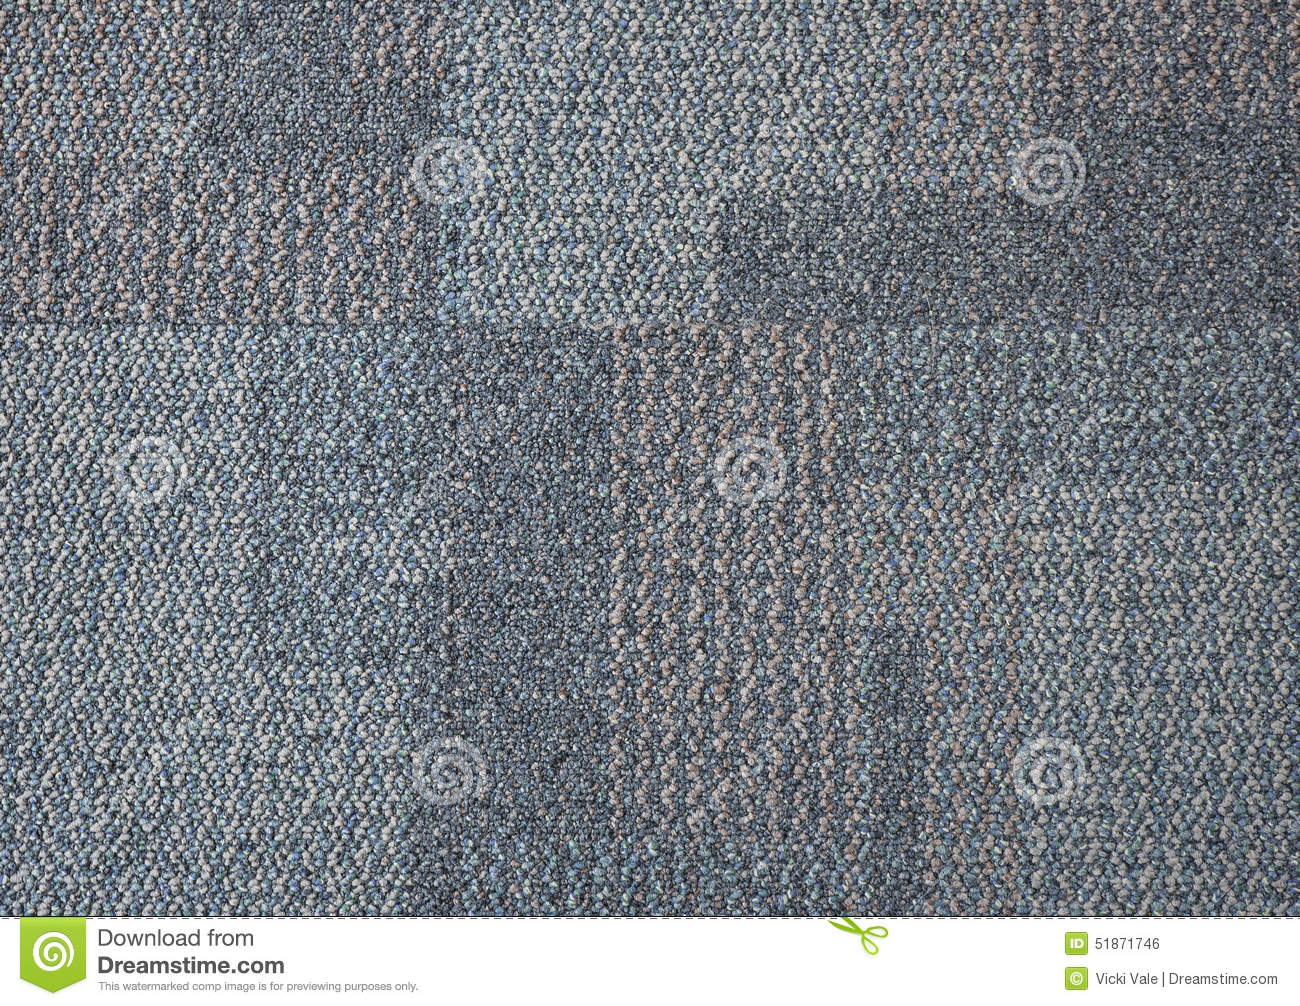 Download Textured Grey Carpet Stock Photo Image Of Unique Makes